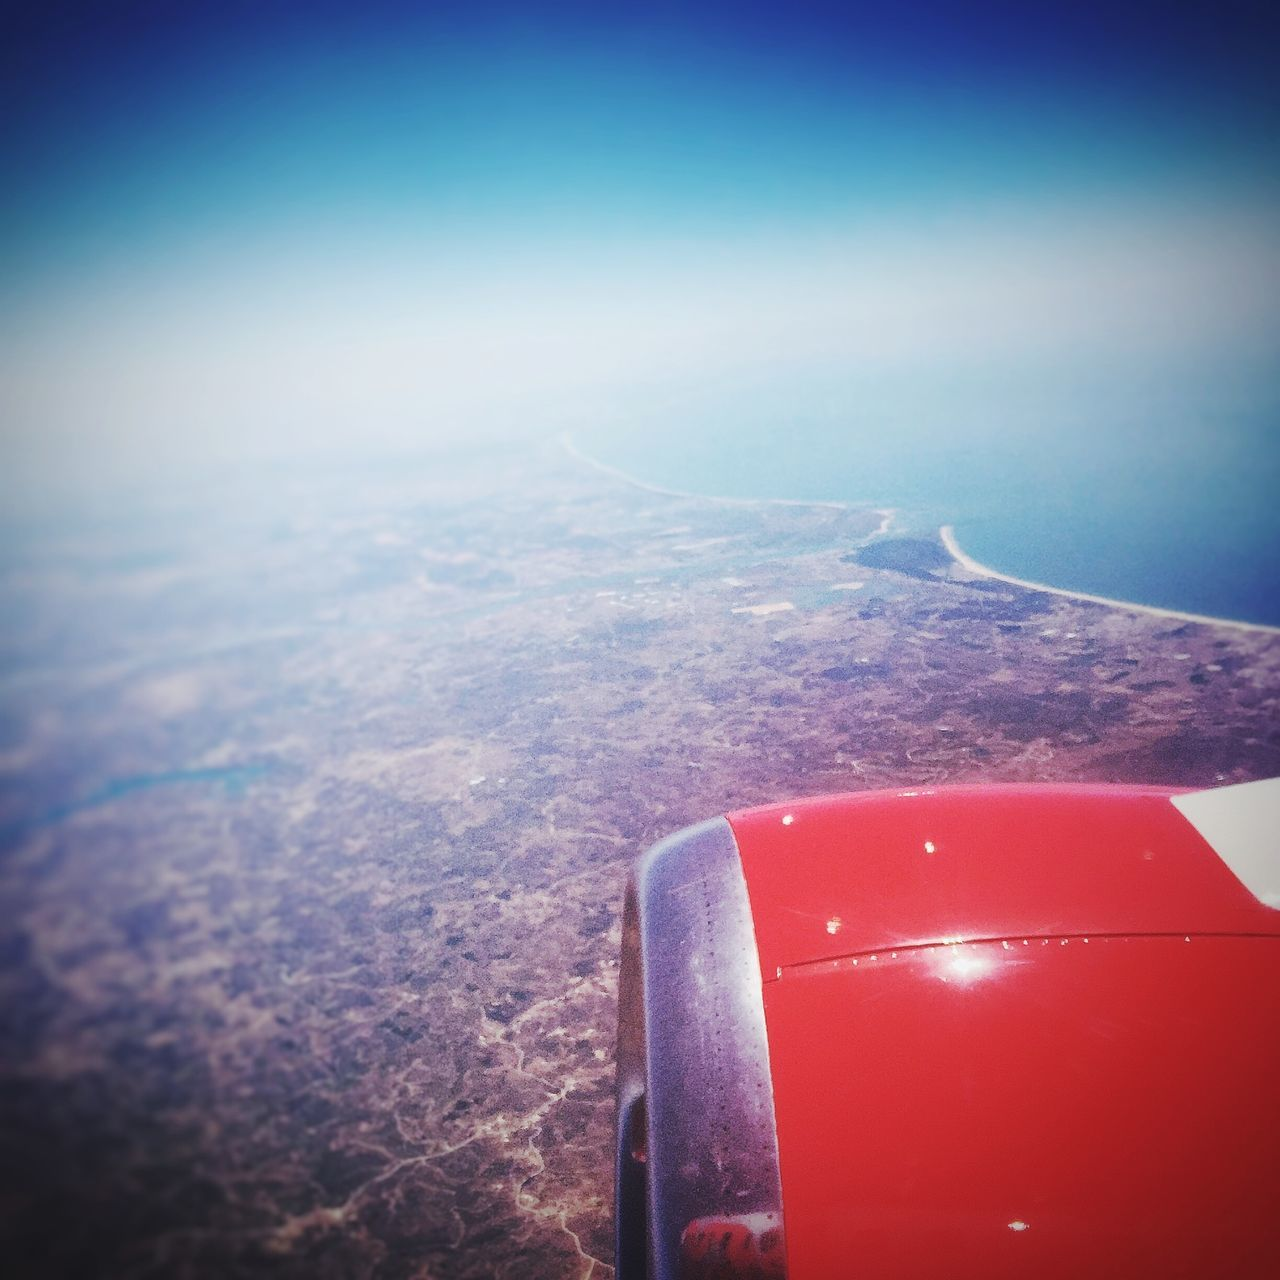 Goodbye Portugal View From An Airplane Jet2 Up In The Air Faro The Flight Home Portugal From An Airplane Window